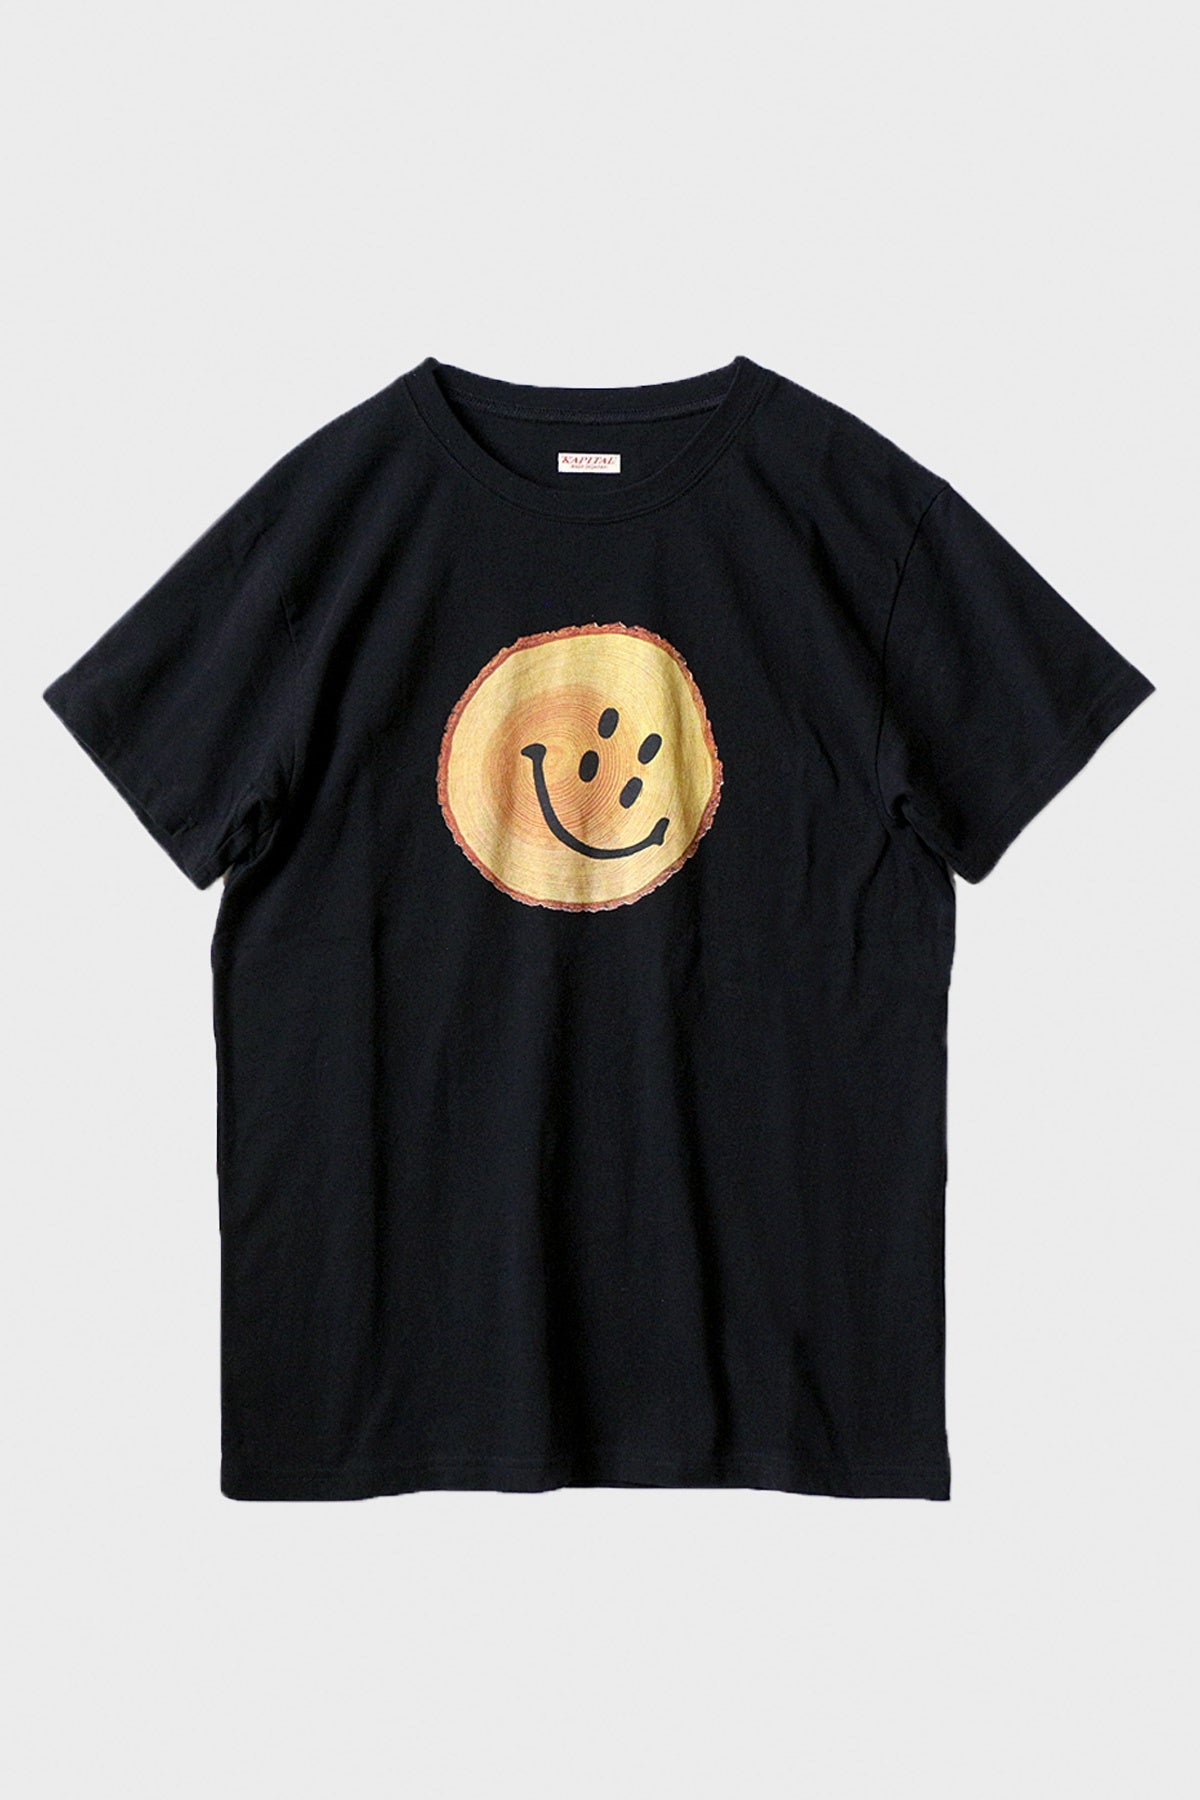 Kapital - Jersey Crew T (TRUNK RAIN SMILE) - Black - Canoe Club